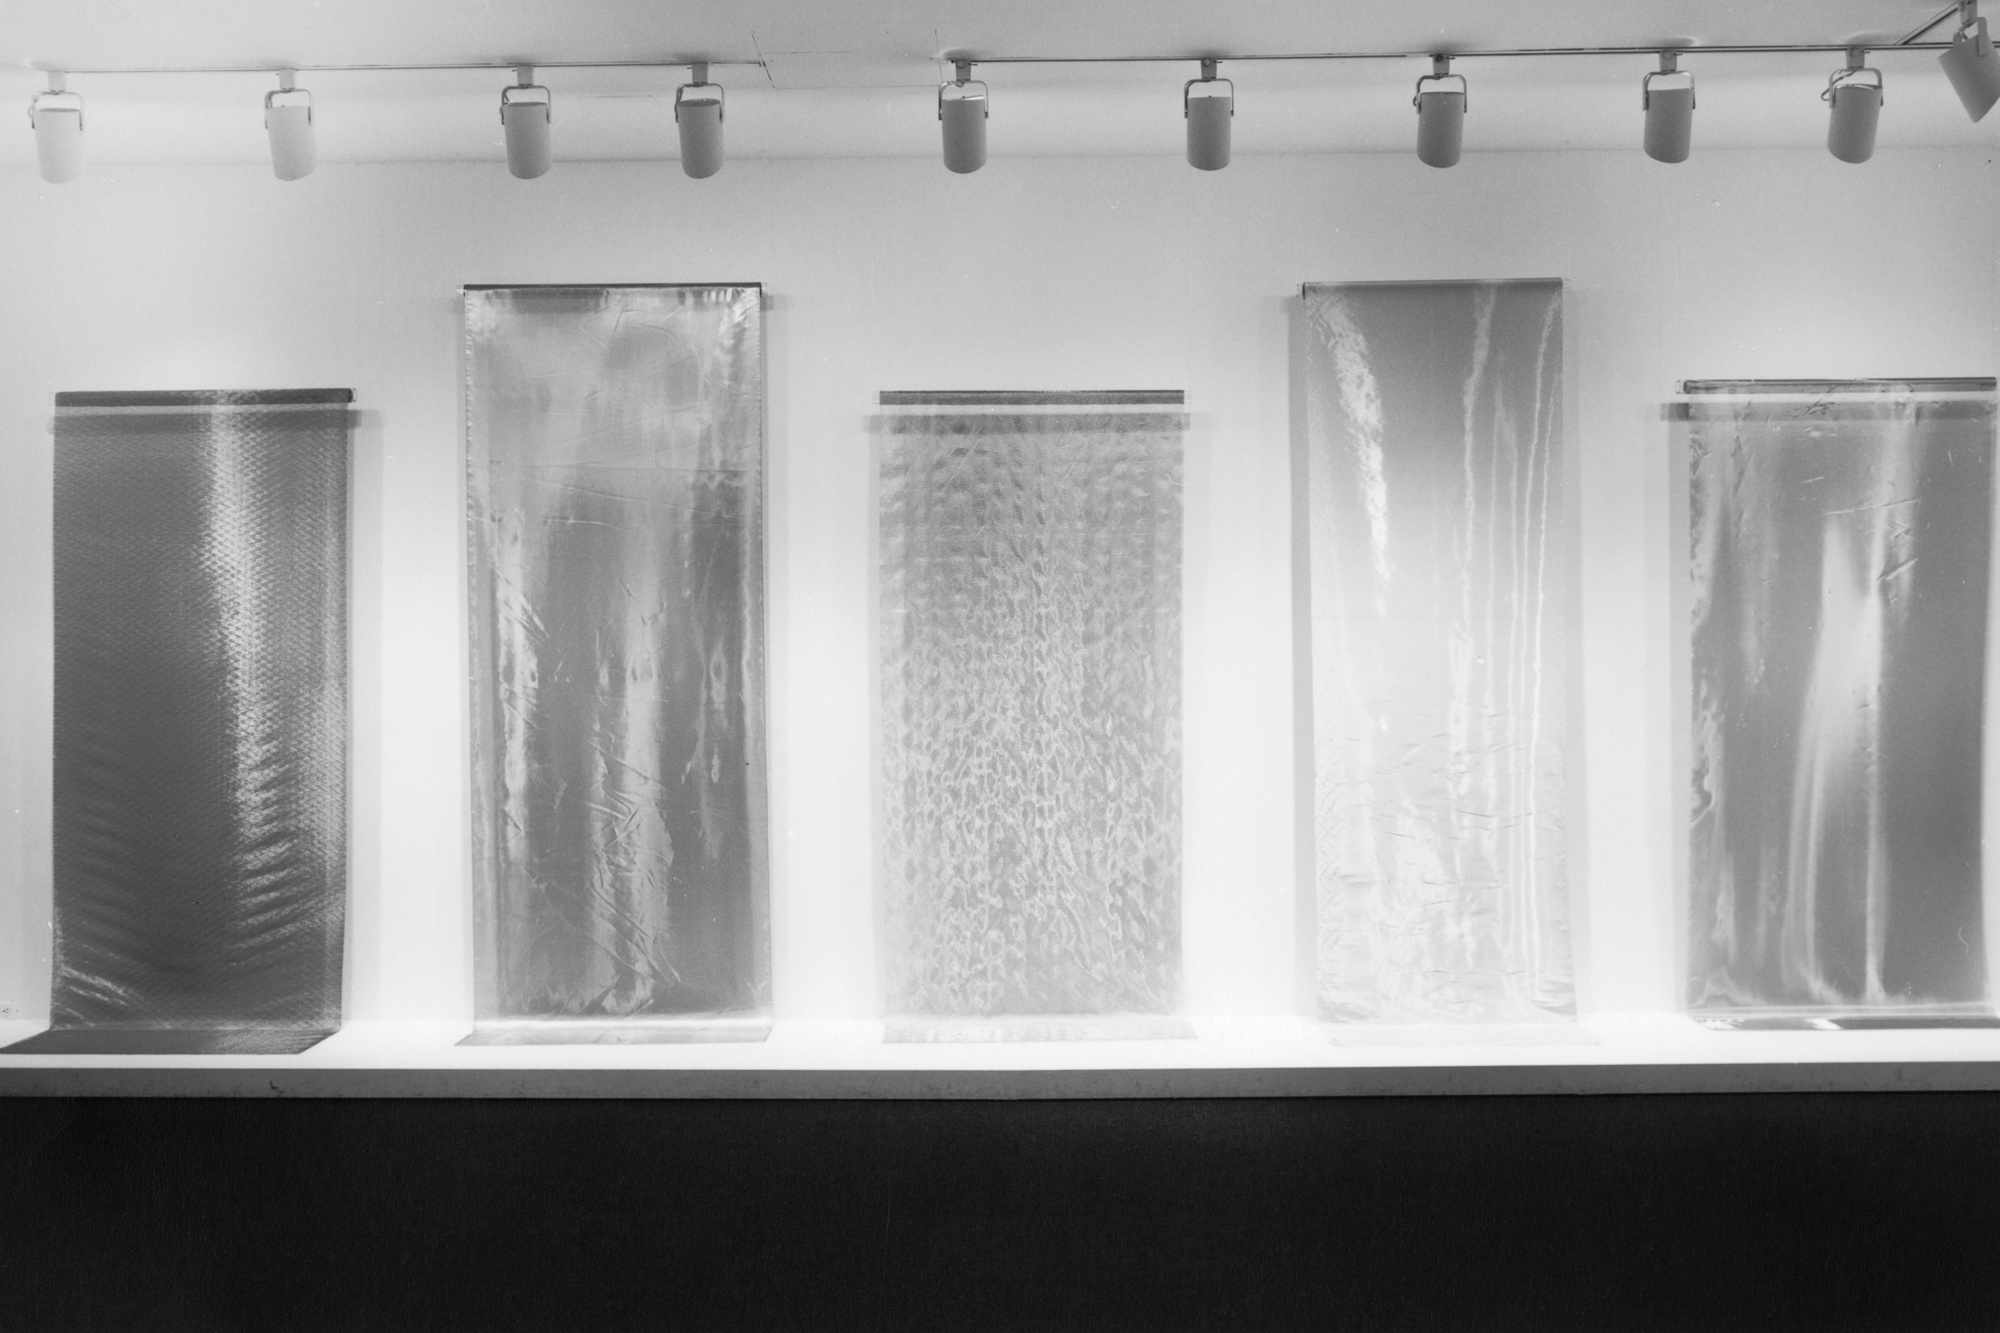 Installation view of Metallic Fabrics from the Collection at The Museum of Modern Art, New York. Photo: Mali Olatunji